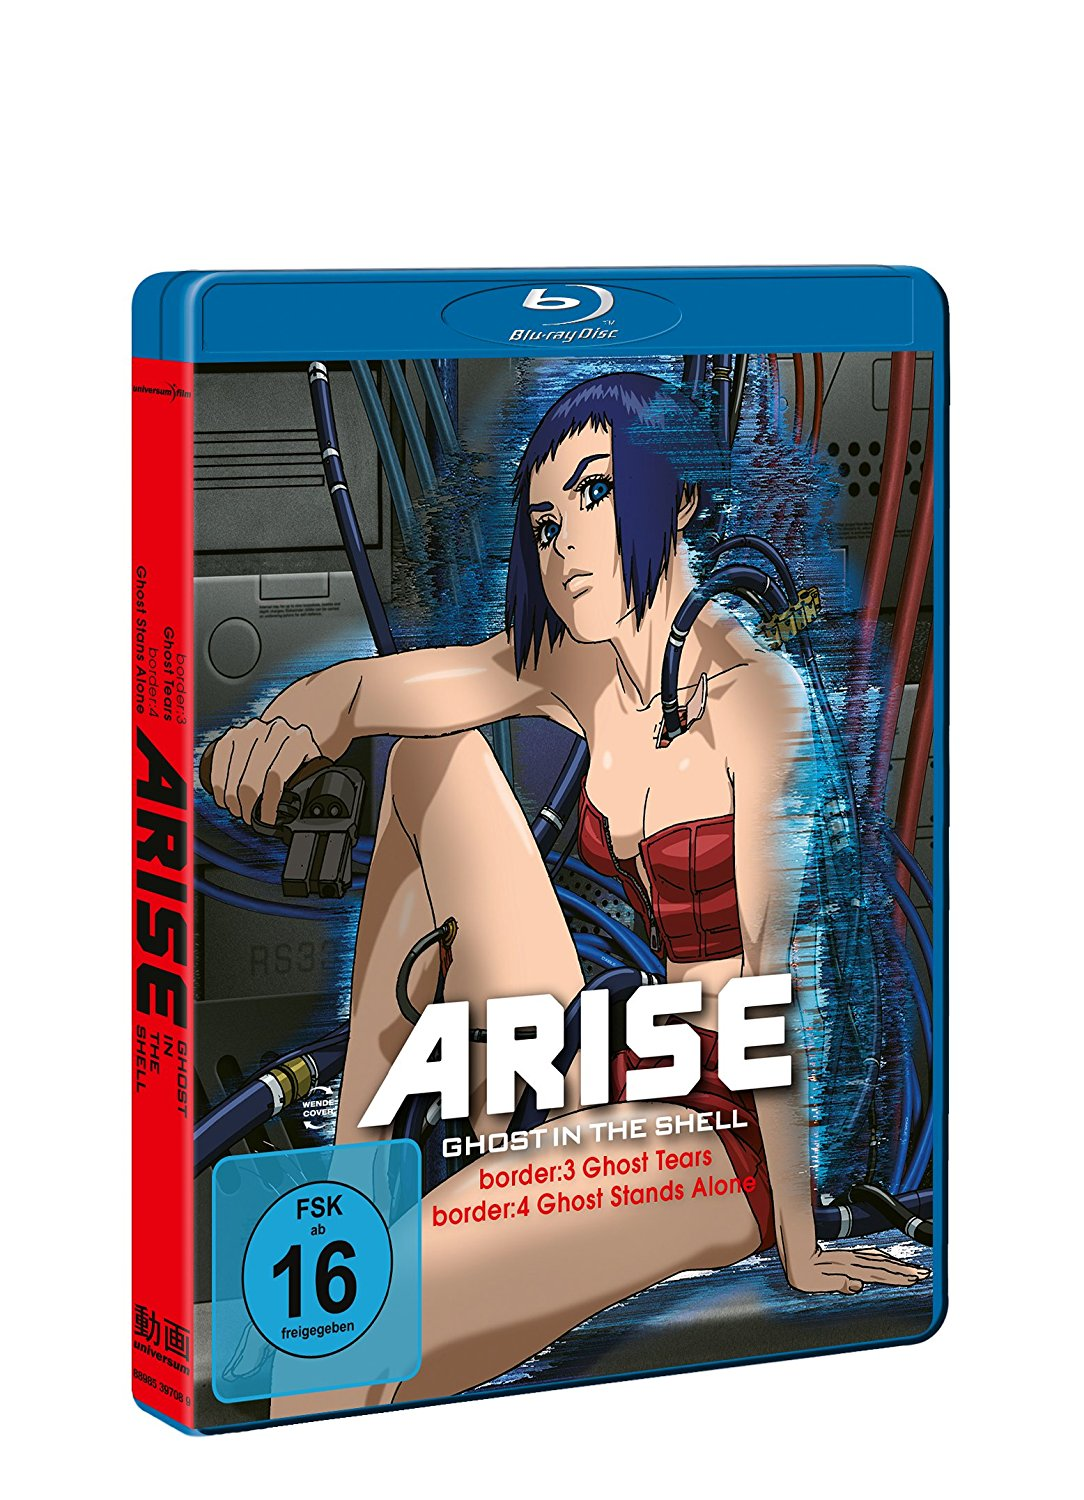 Ghost in the Shell - ARISE-border-3-4-Test-Review-DVD-Bluray-Trailer01